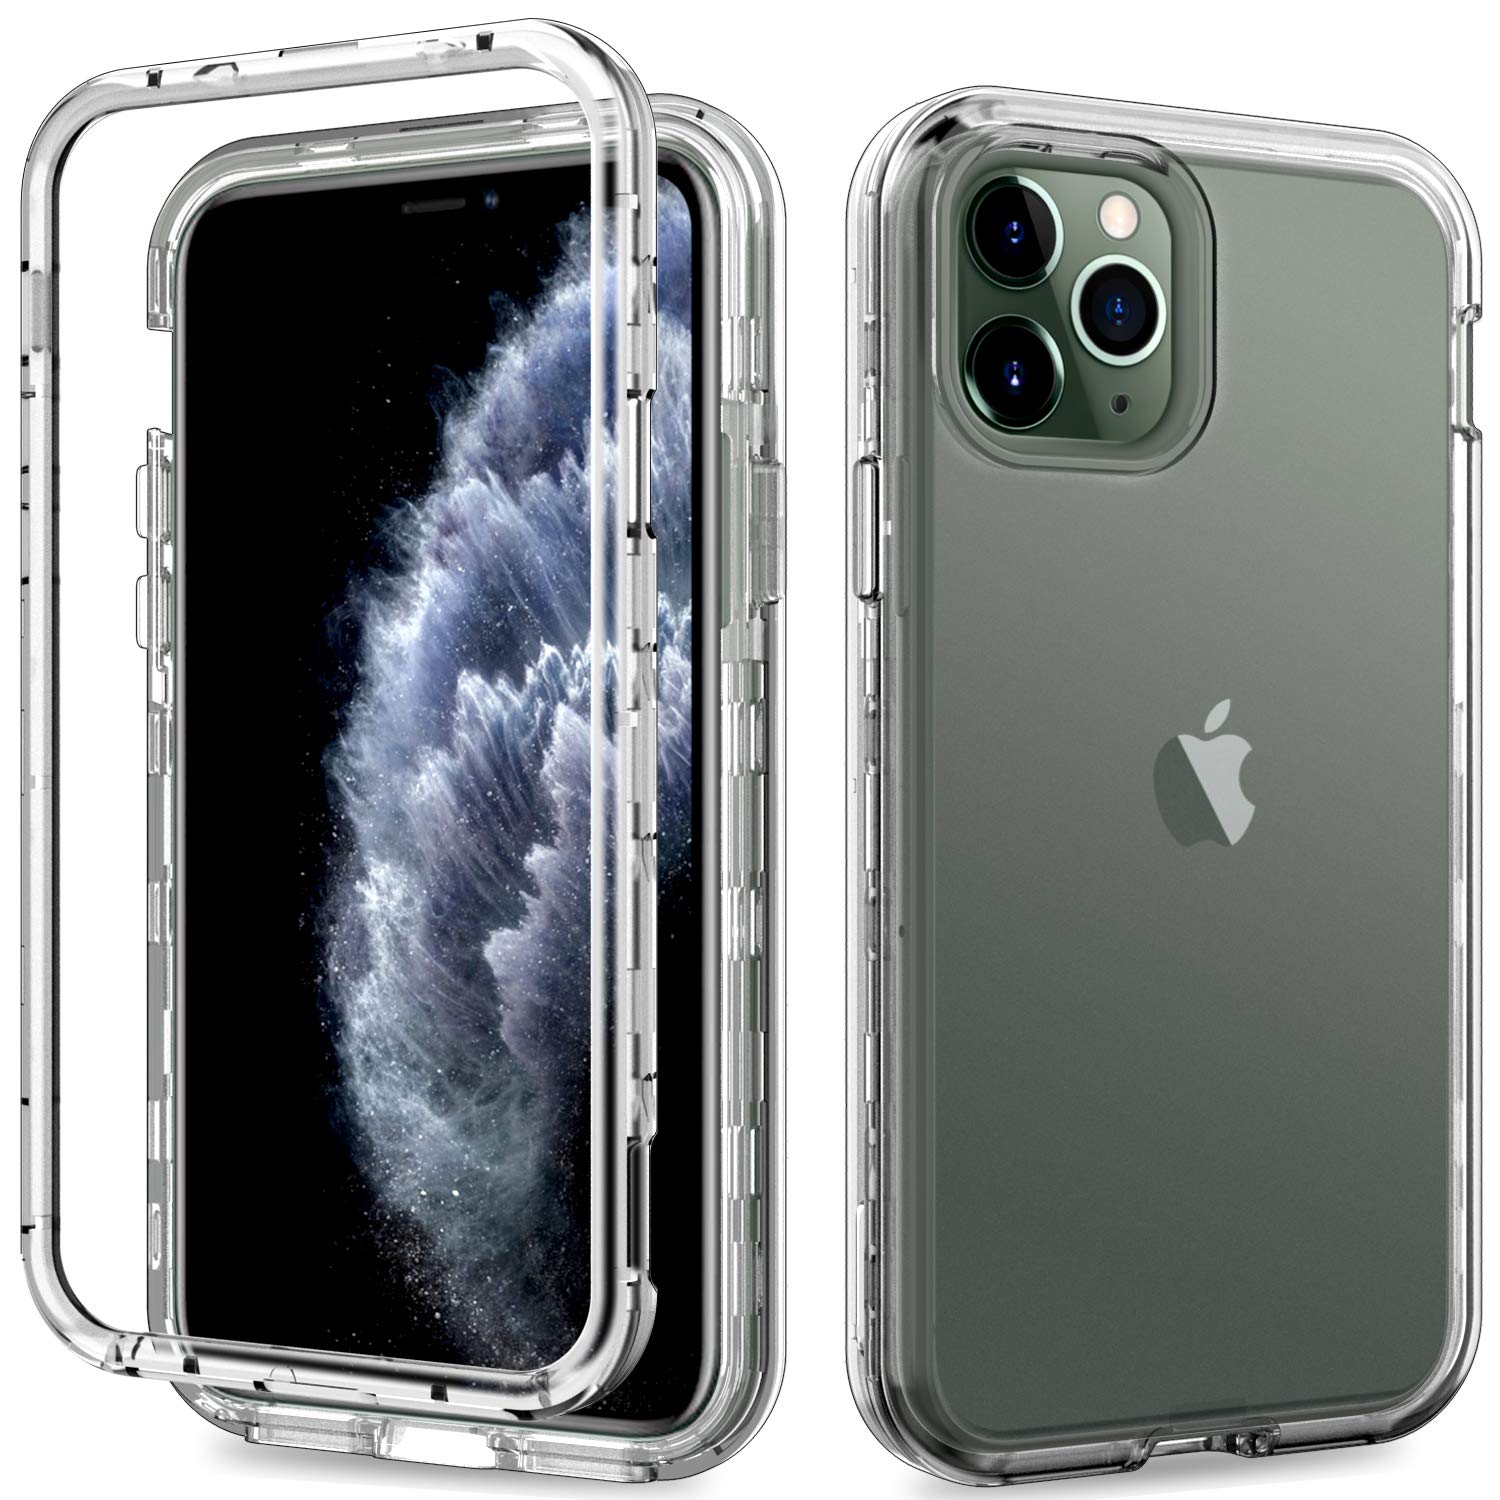 ACKETBOX iPhone 11 Pro Case,Heavy Duty Hybrid Impact Defender Hard Clear PC Back Case and Bumper+Transparent TPU Cover Full Body Protective Cover for iPhone 11 Pro 5.8 Inch Release 2019 (Clear)